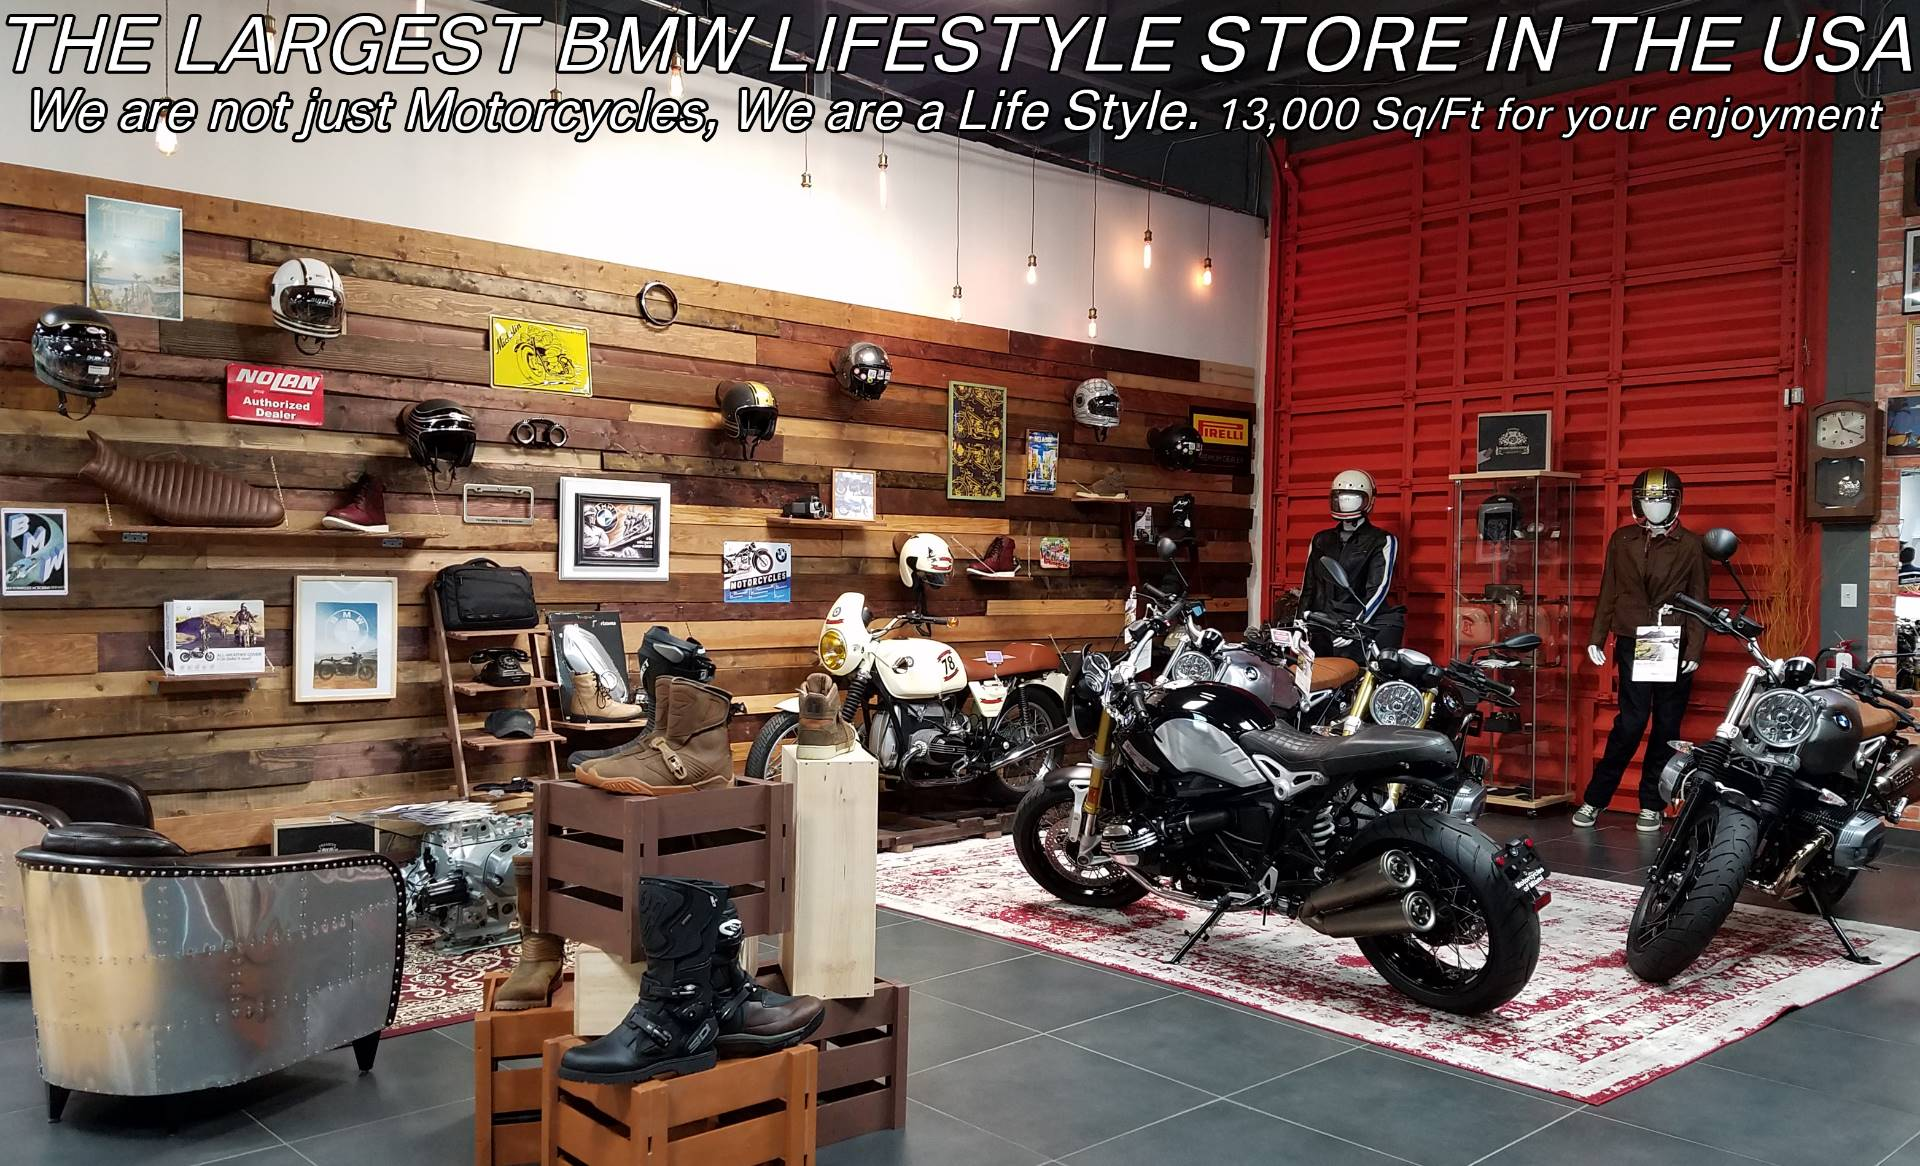 BMW Motorcycles of Miami, Motorcycles of Miami, Motorcycles Miami, New Motorcycles, Used Motorcycles, pre-owned. #BMWMotorcyclesOfMiami #MotorcyclesOfMiami - Photo 37